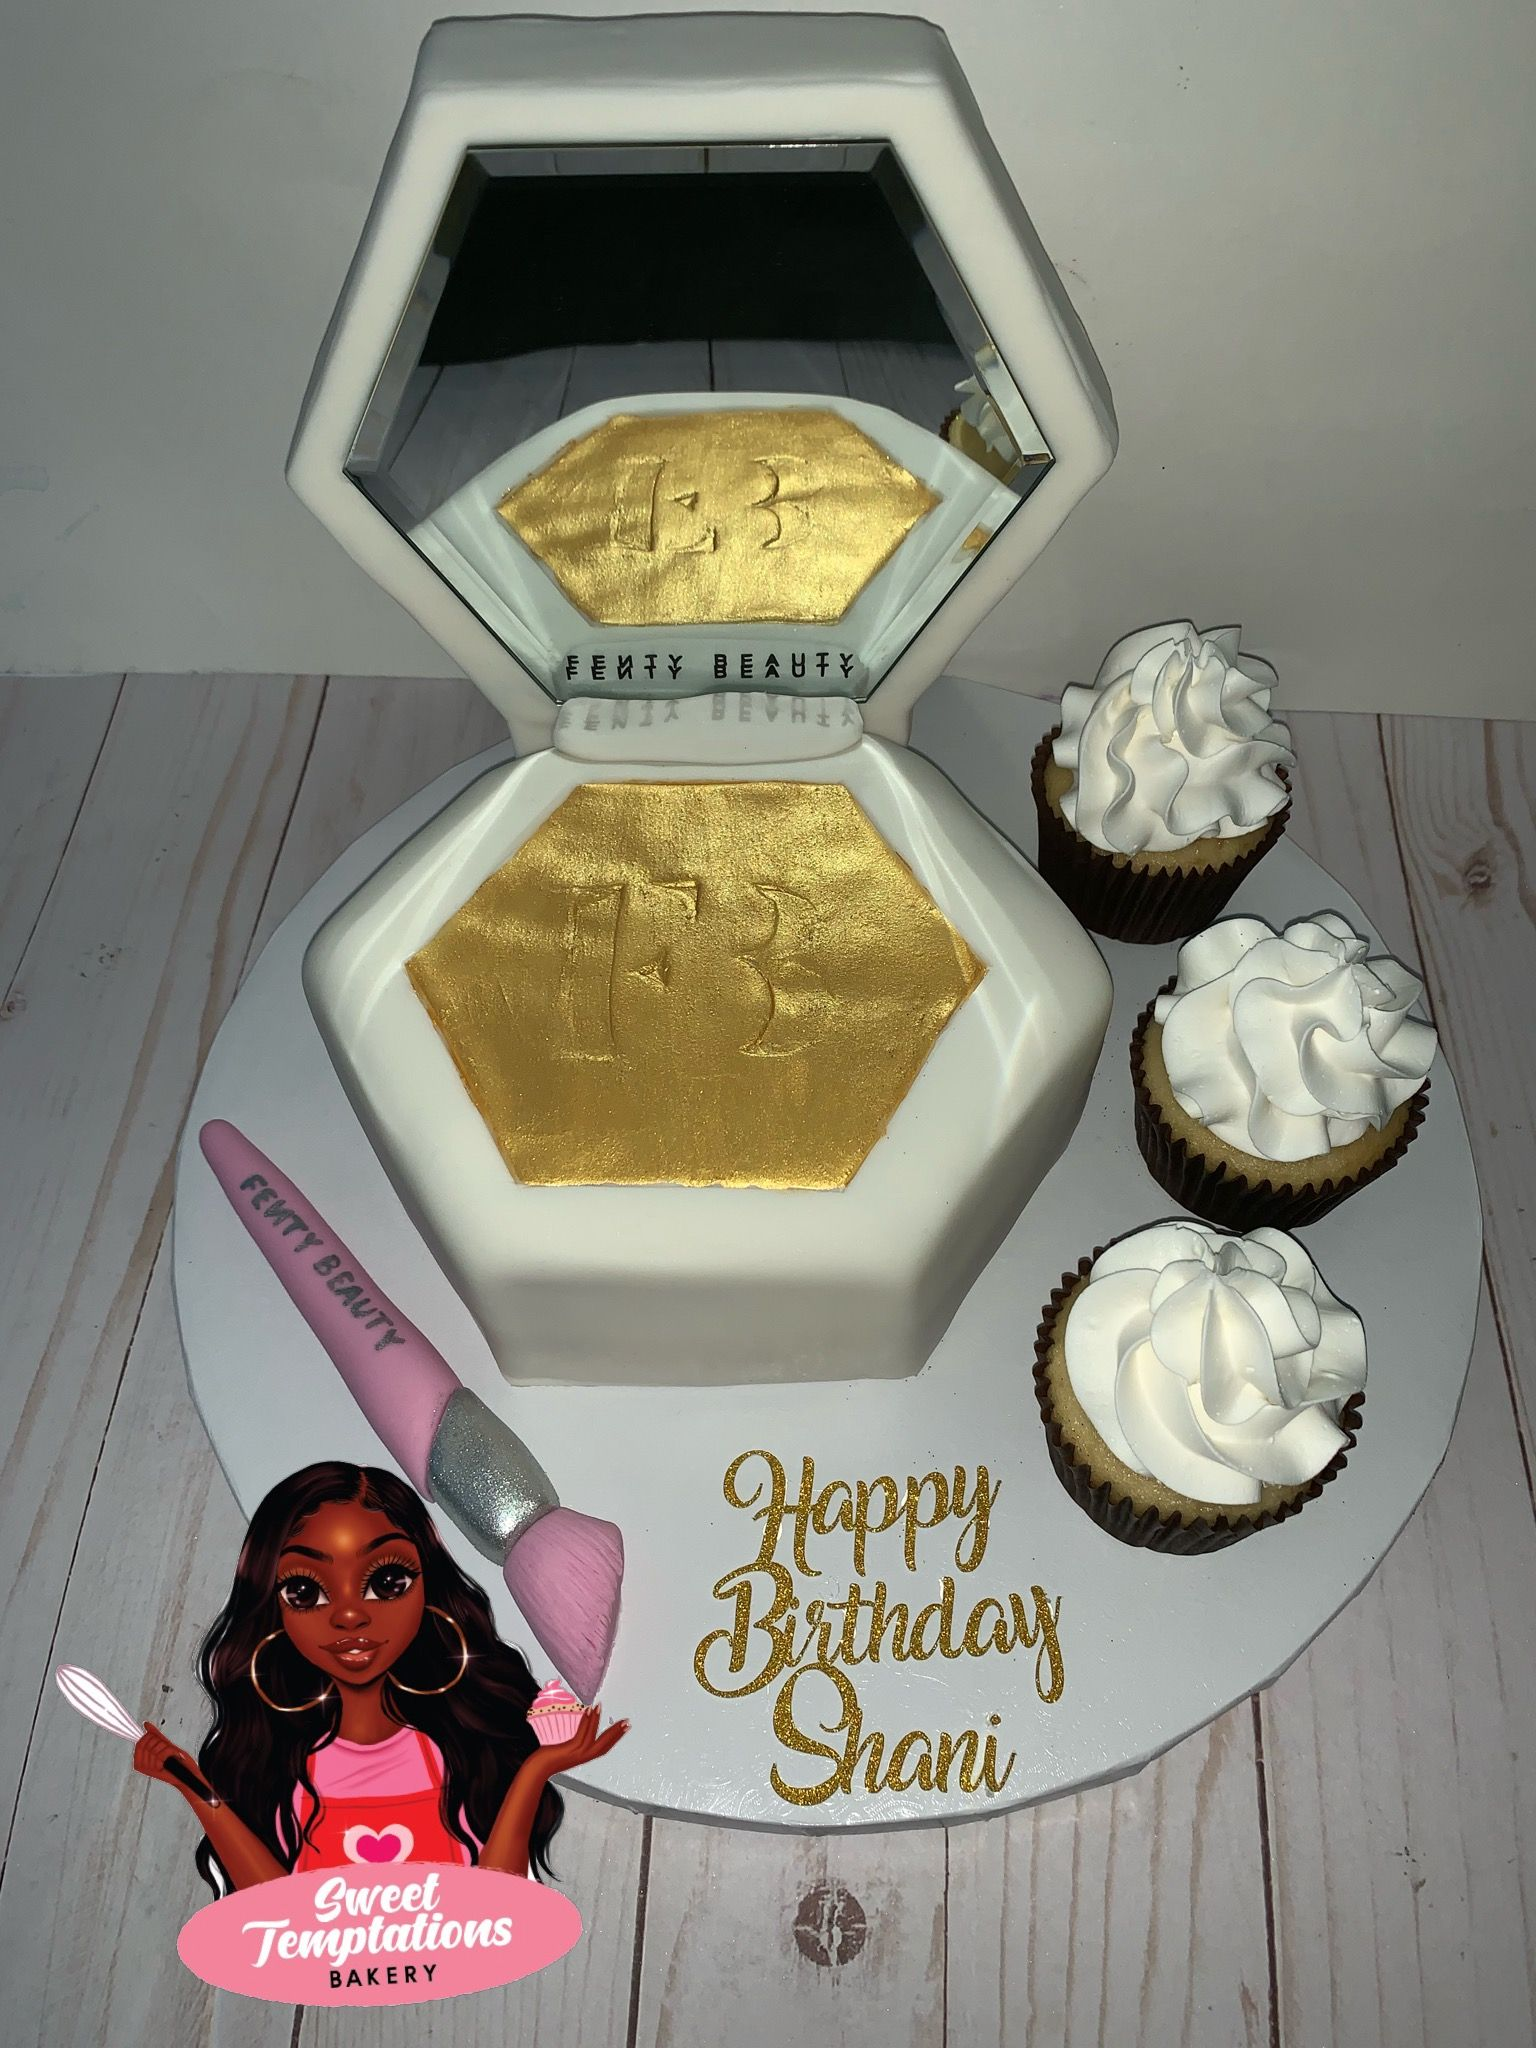 Incredible Fenty Fentybeauty Rihanna Trophywife Cake Makeup Highlighter Personalised Birthday Cards Paralily Jamesorg